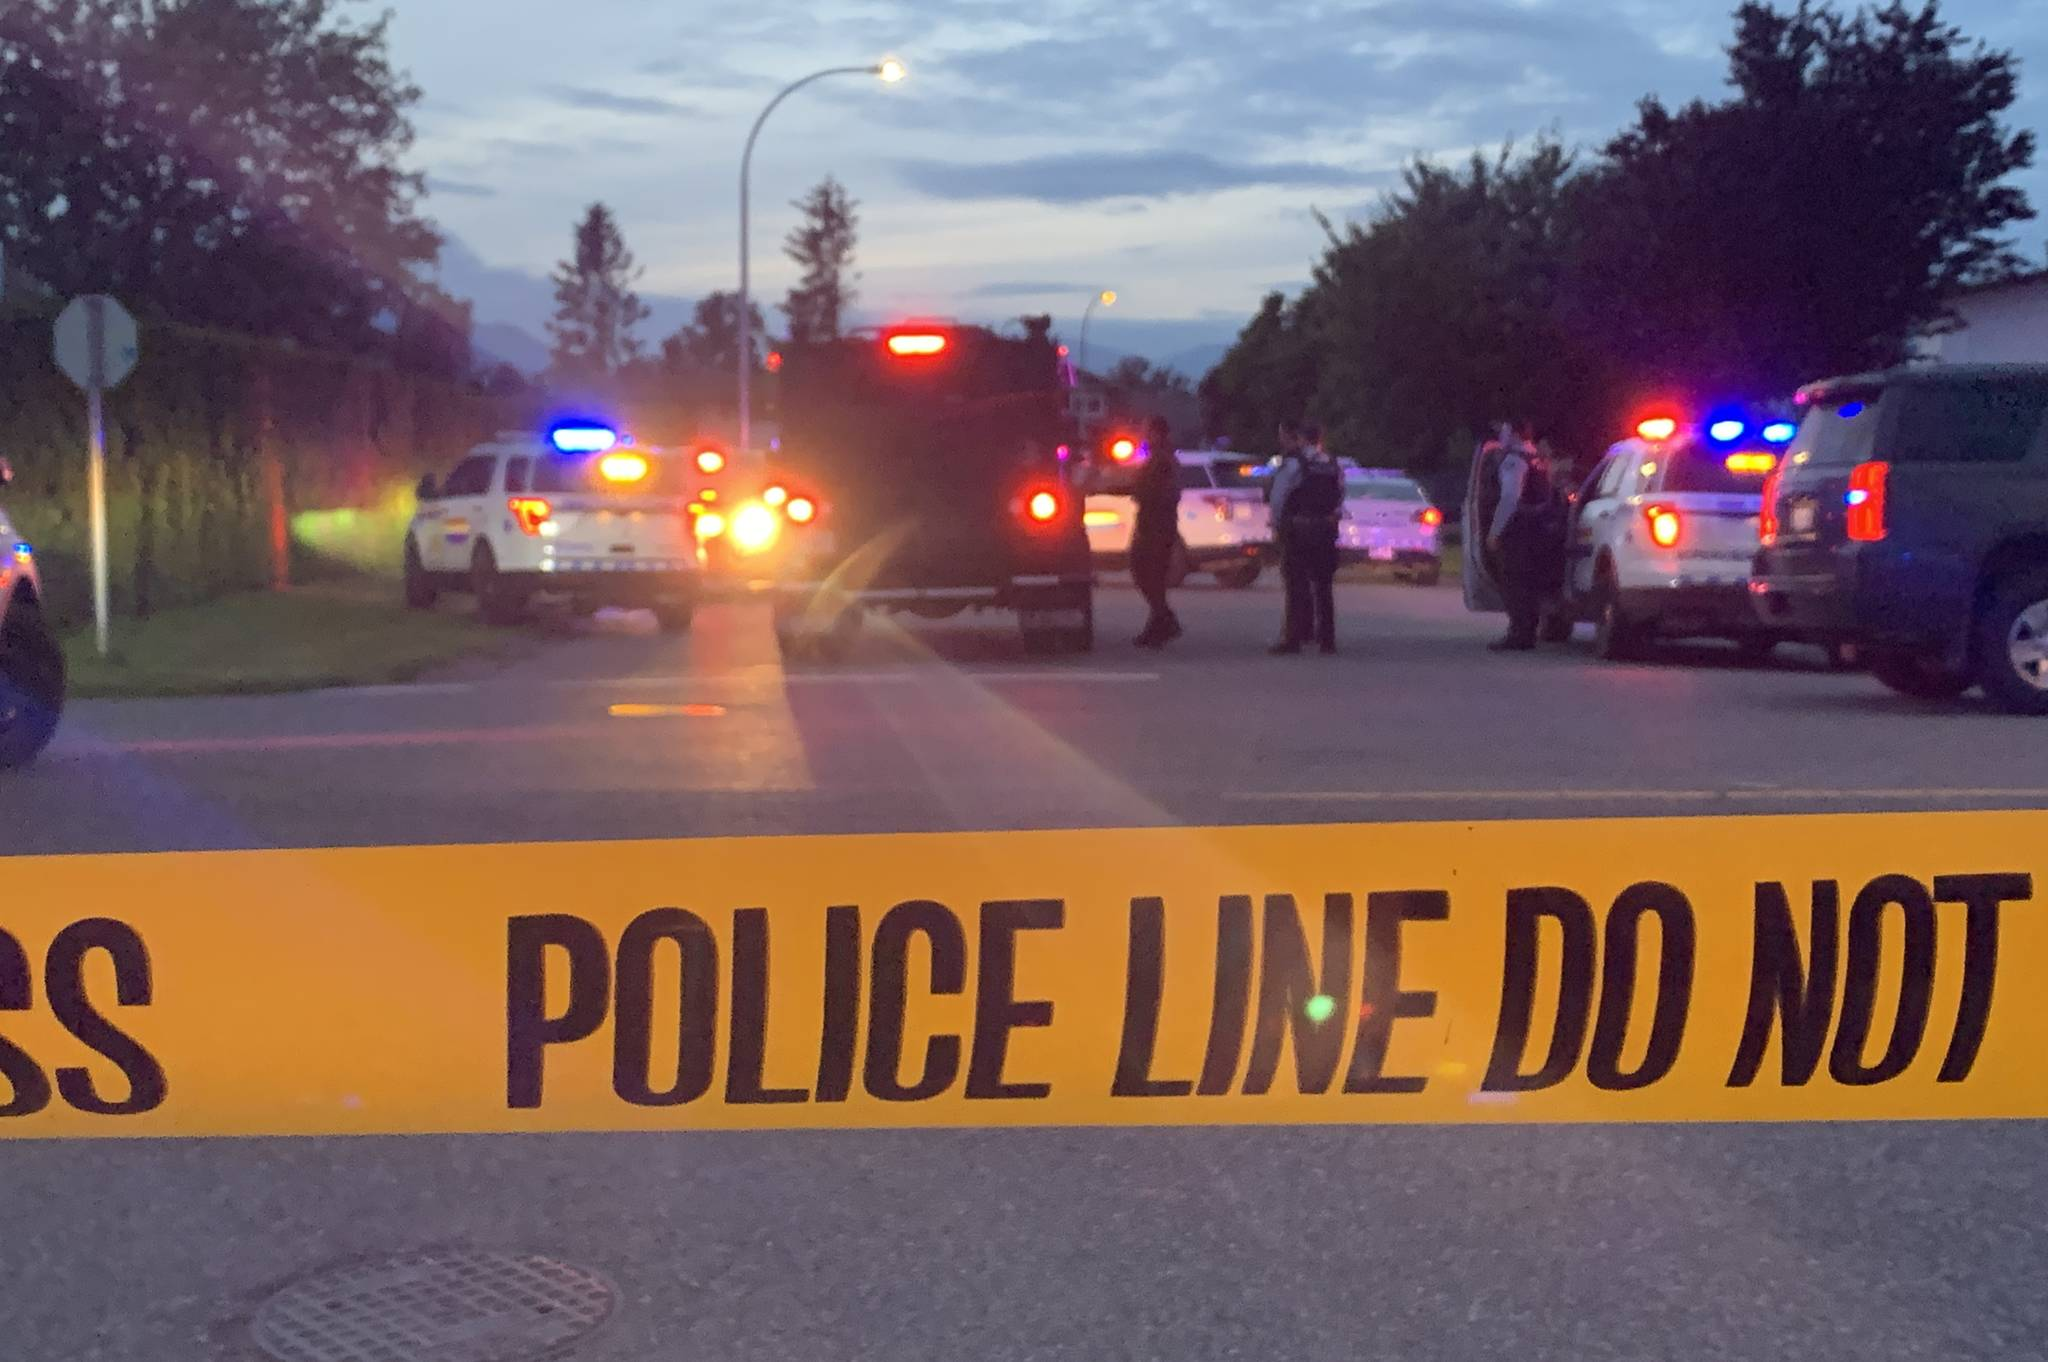 UPDATE: Police oversight agency investigating after shots fired Saturday night in Chilliwack neighbourhood